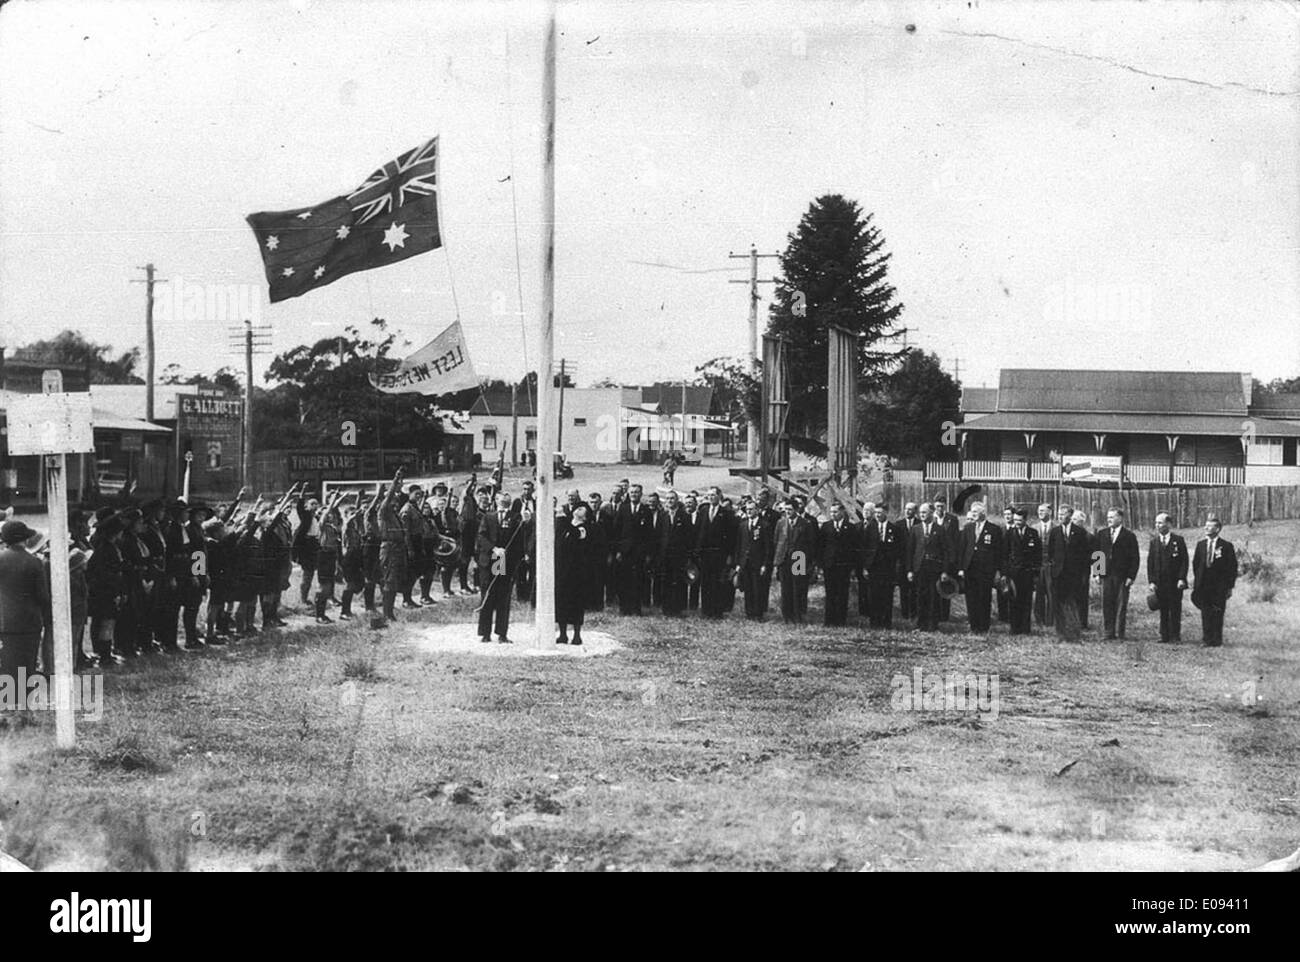 Mrs Charles Sharp unfurling the flag on Anzac Day - Coffs Harbour, NSW, 25 April 1937 Stock Photo